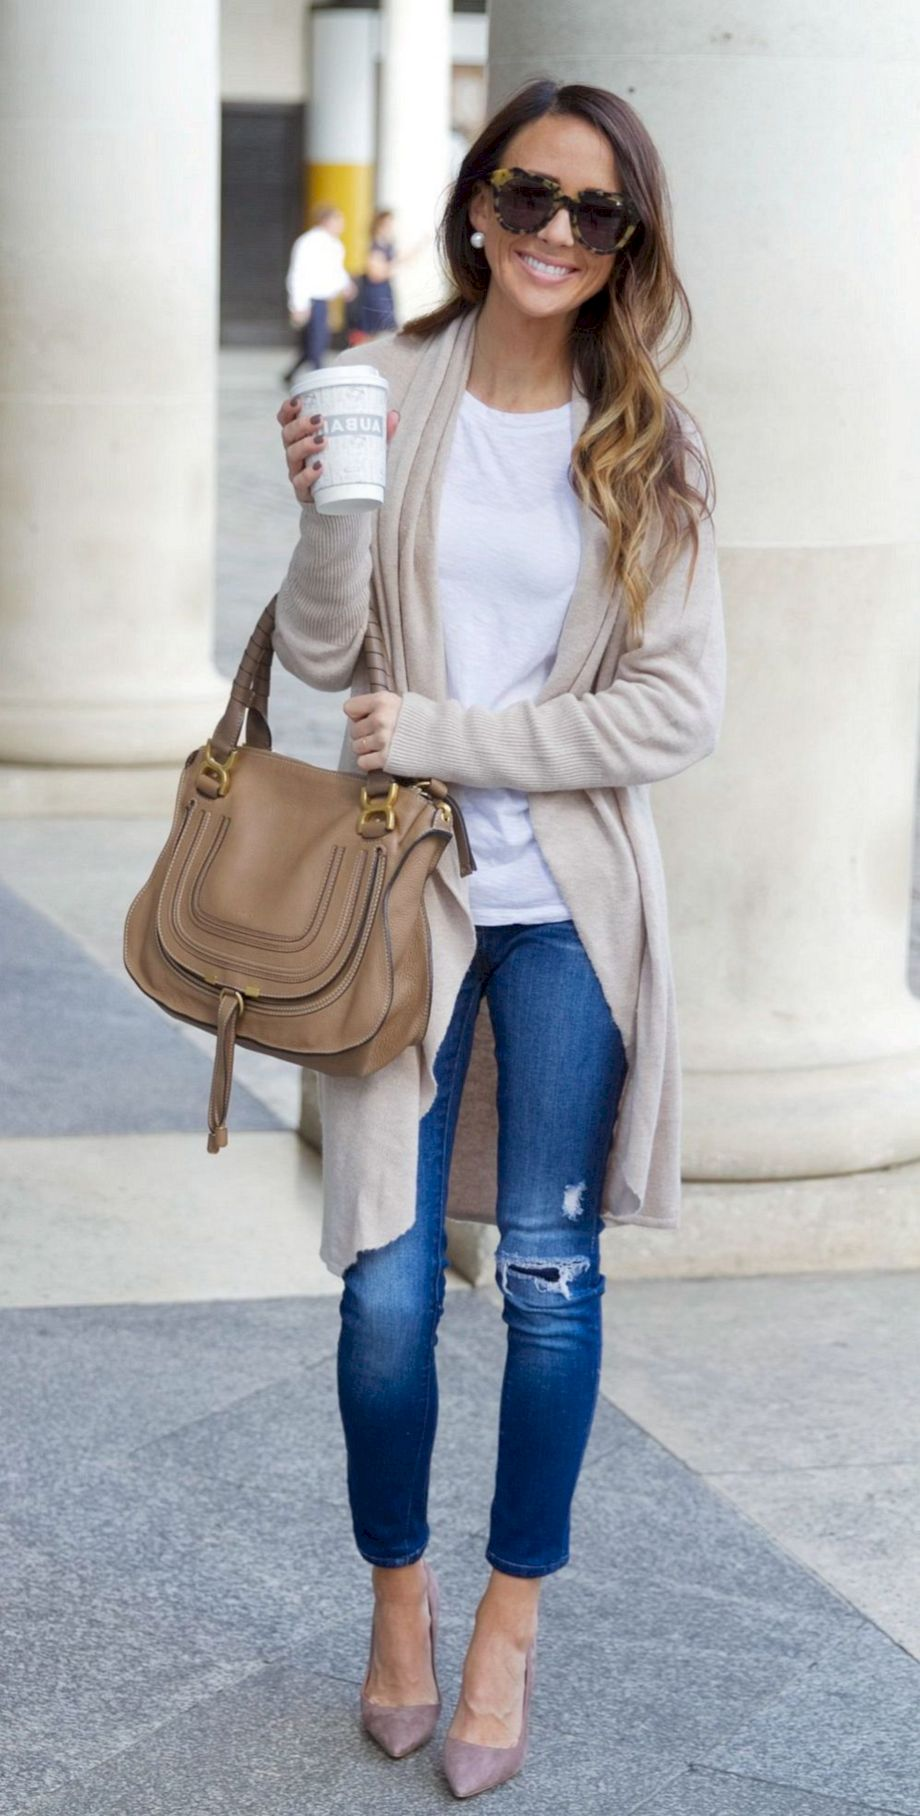 Cardigan outfit 07